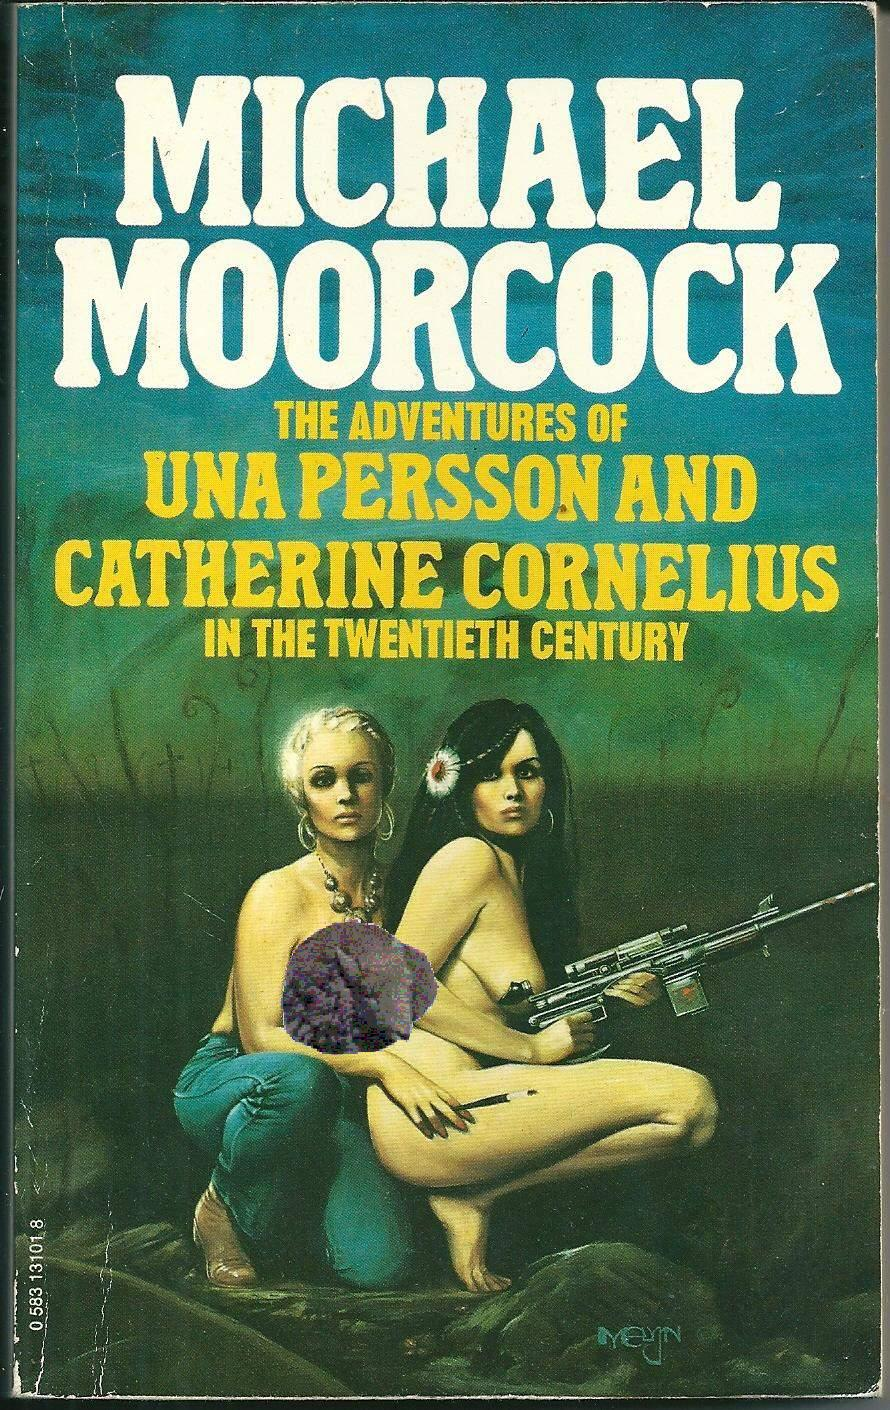 Moorcock! More Boobs!